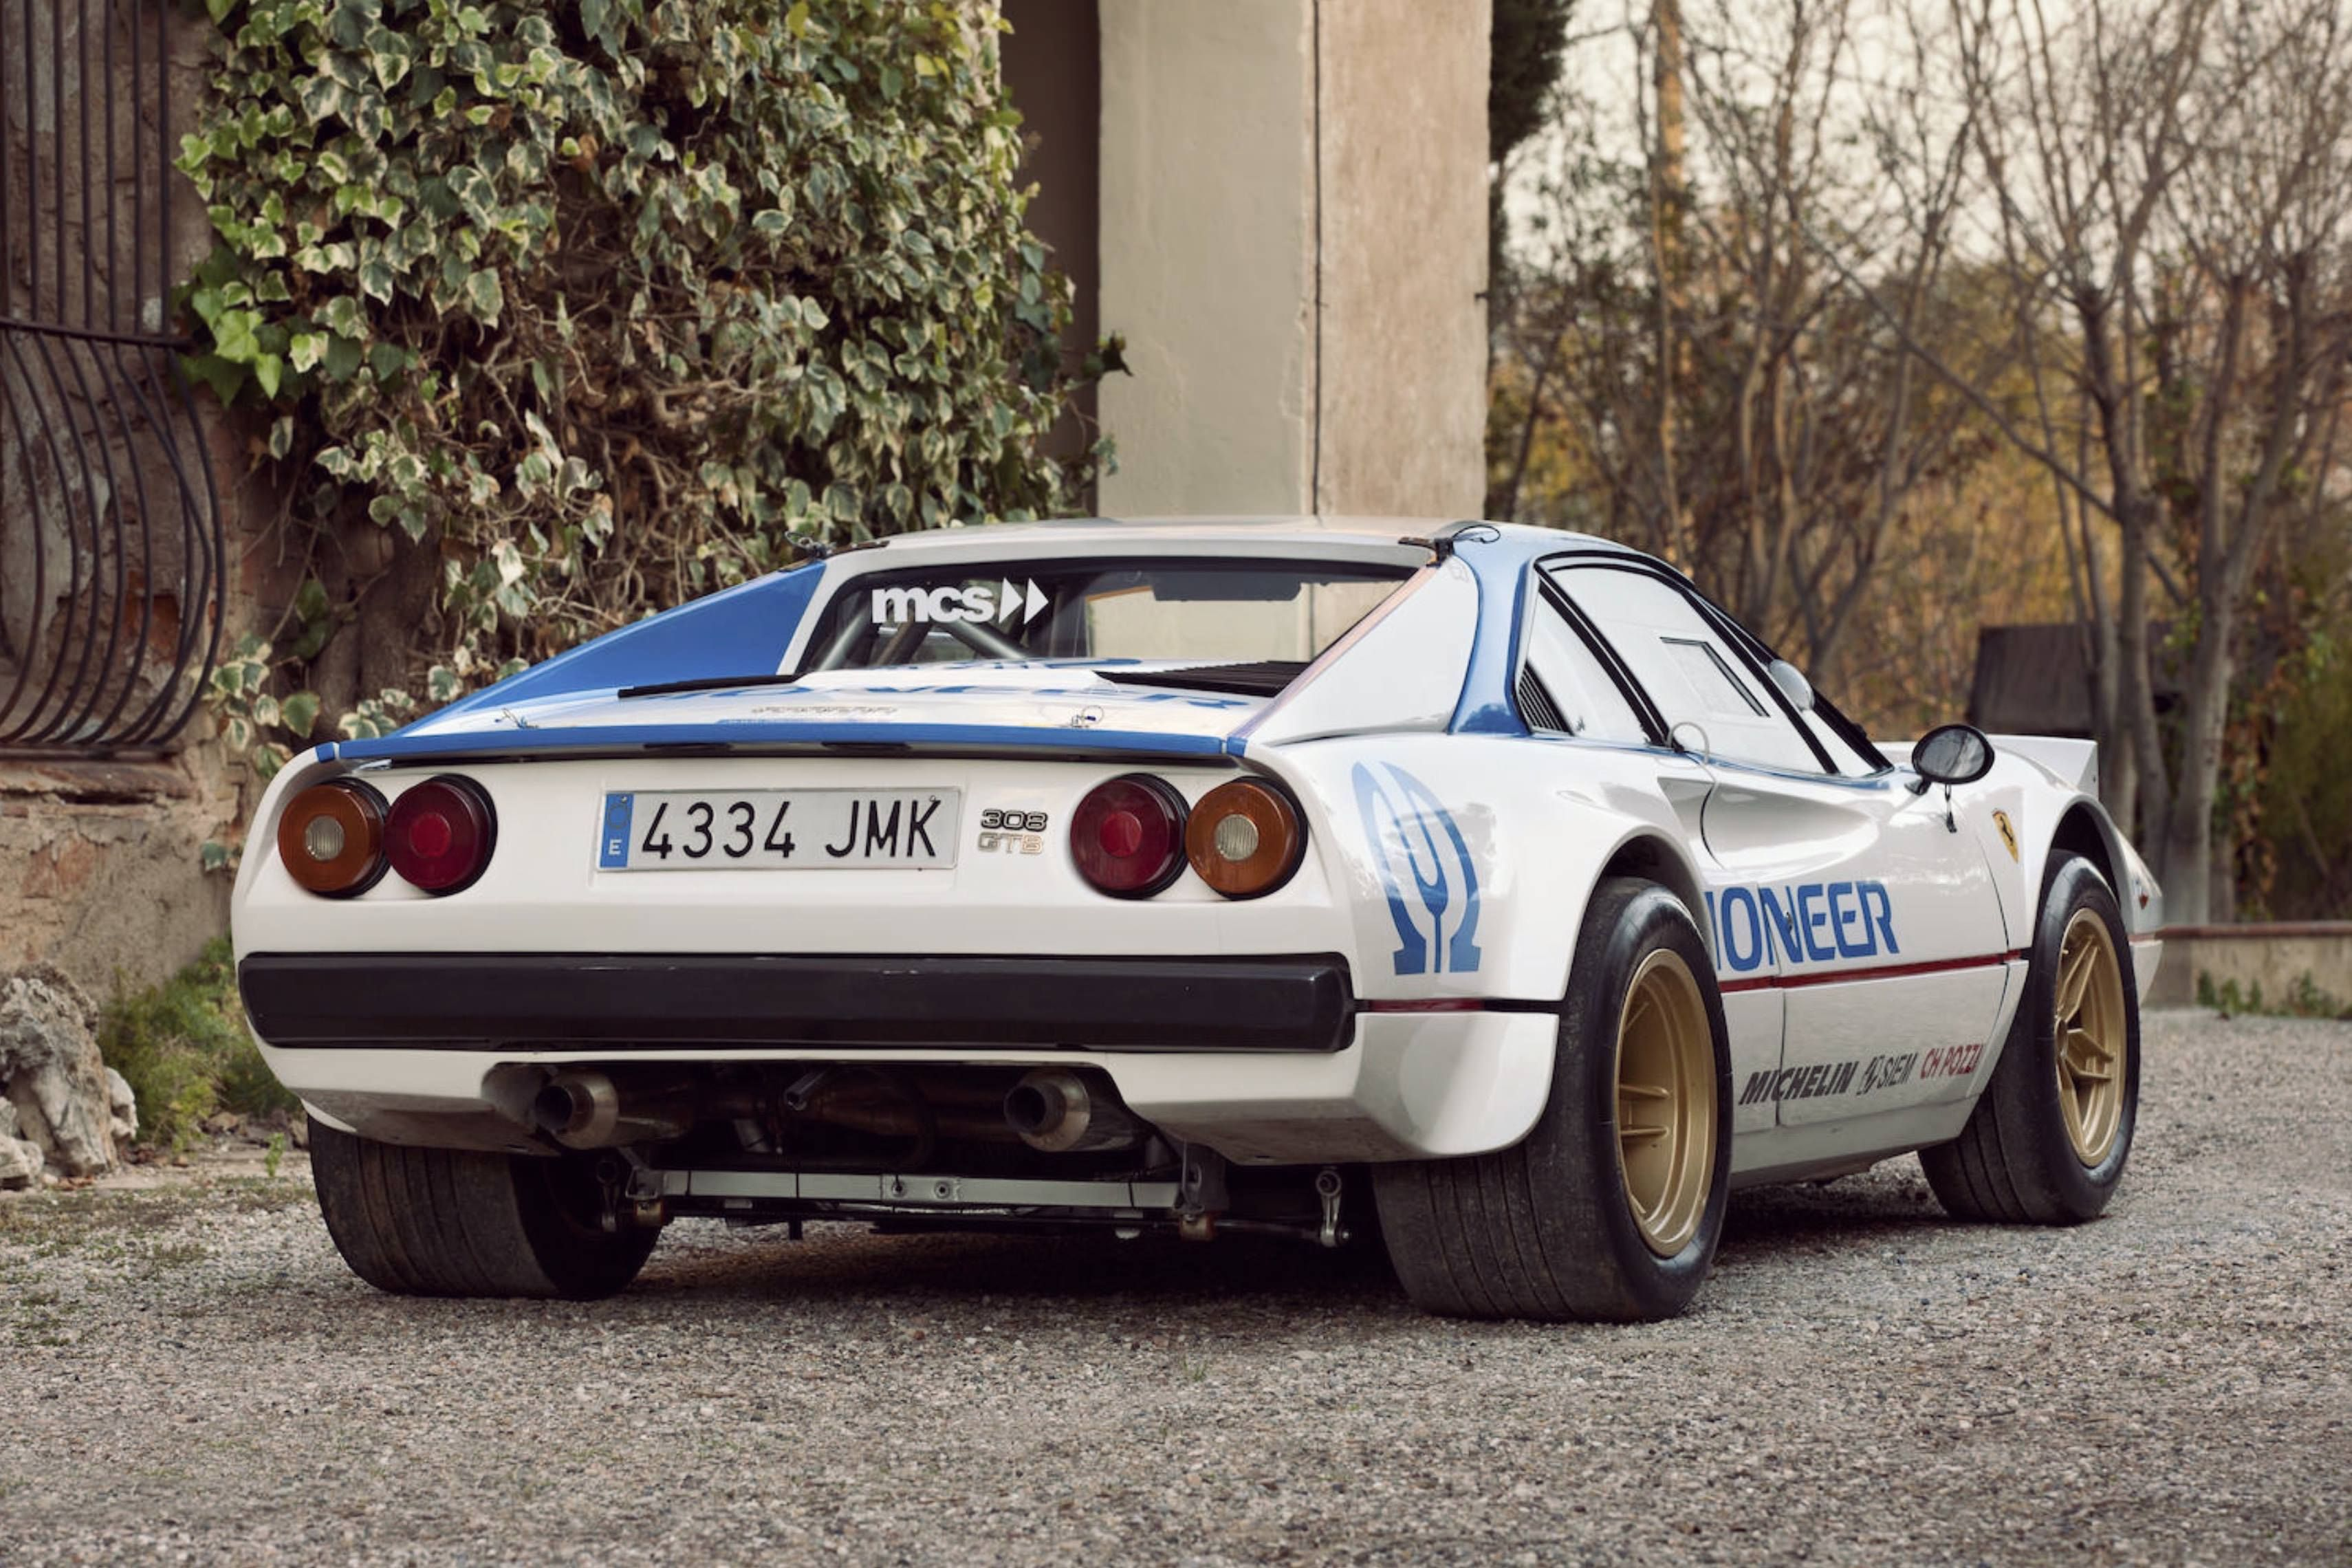 FERRARI 308 GTB GROUP 4 RACER